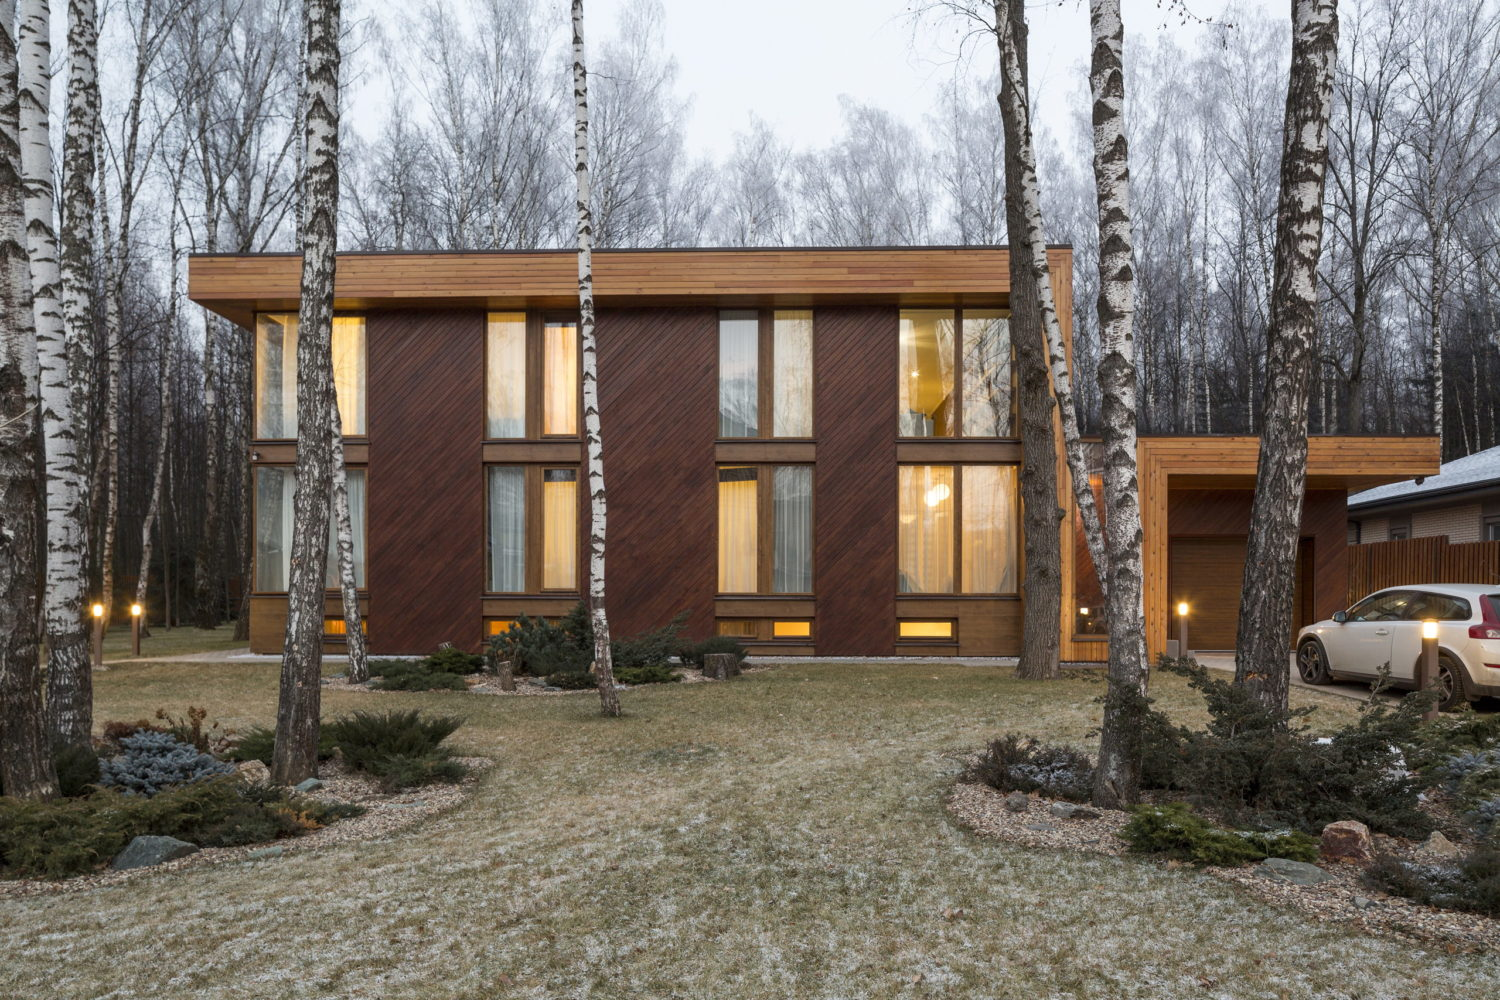 House in Birch Forest by Aleksandr Zhidkov